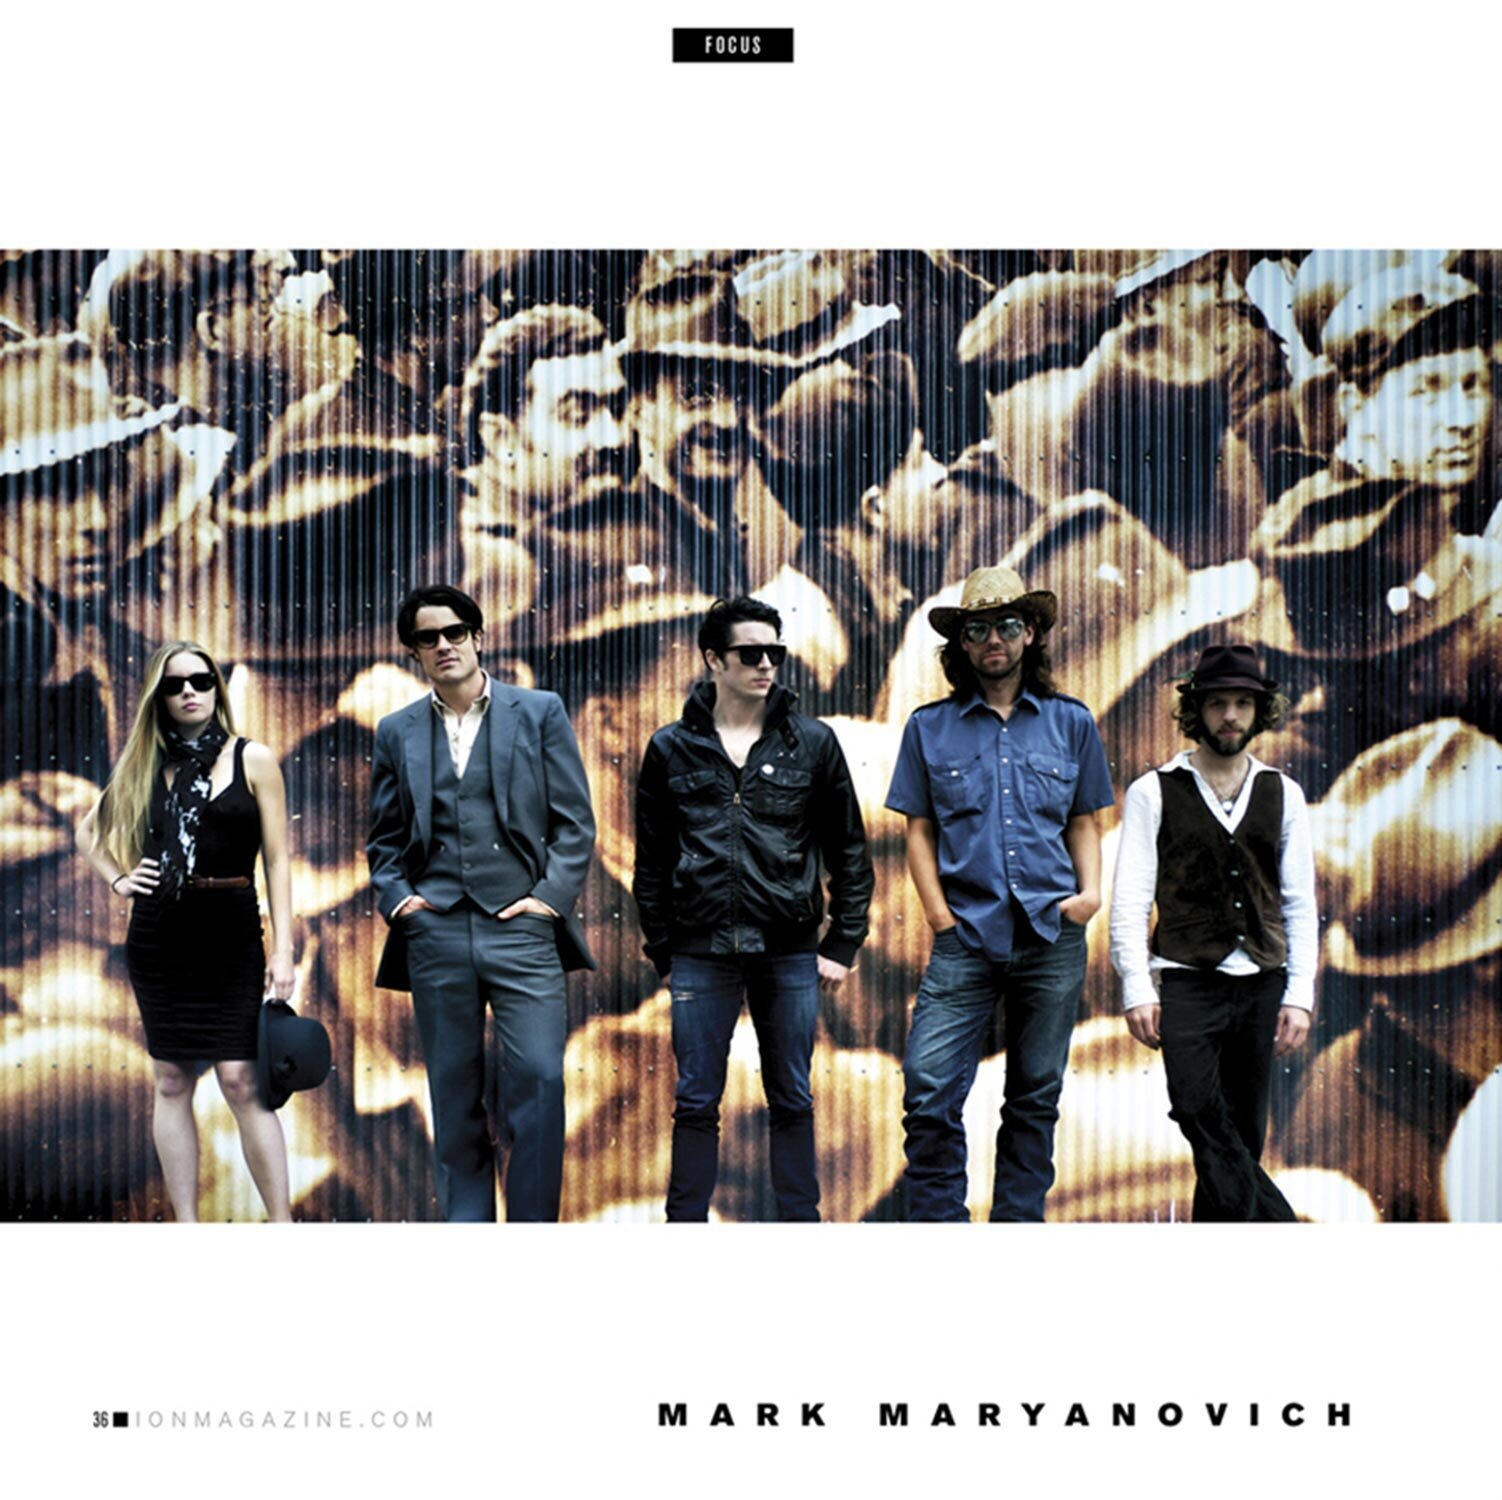 LA Photographer Mark Maryanovich magazine article featuring band portrait five members standing against wall mural of people wearing hats Publication ION page 8